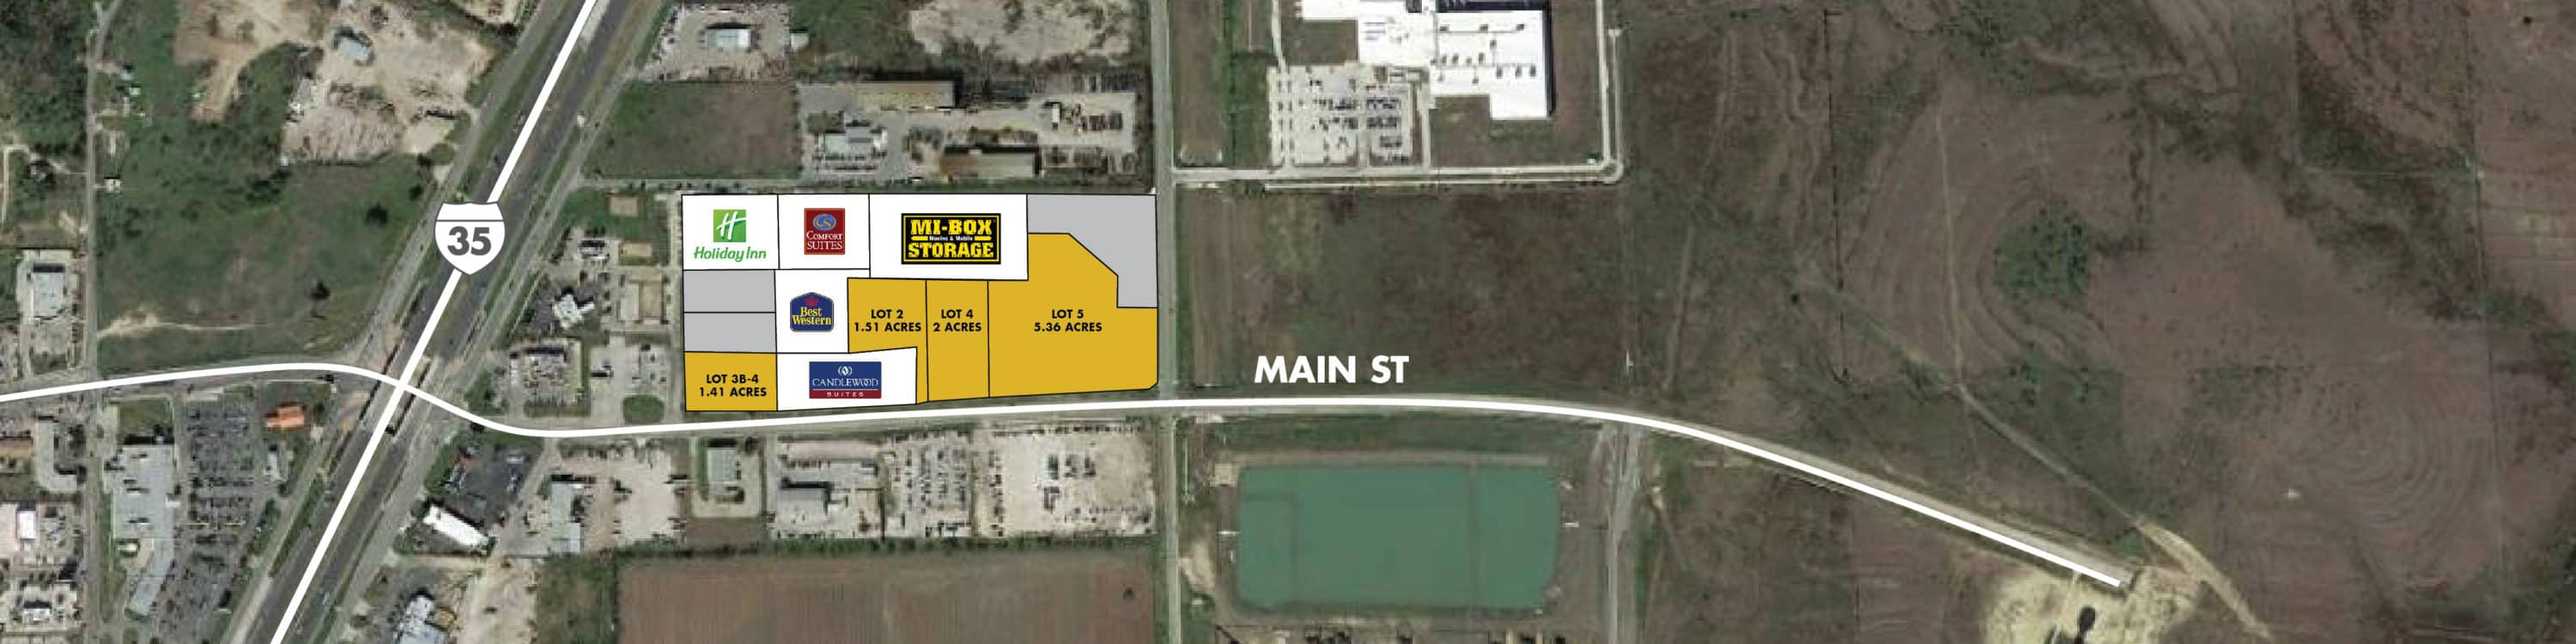 Main Street Pad Sites   Land for Sale in Buda, Texas